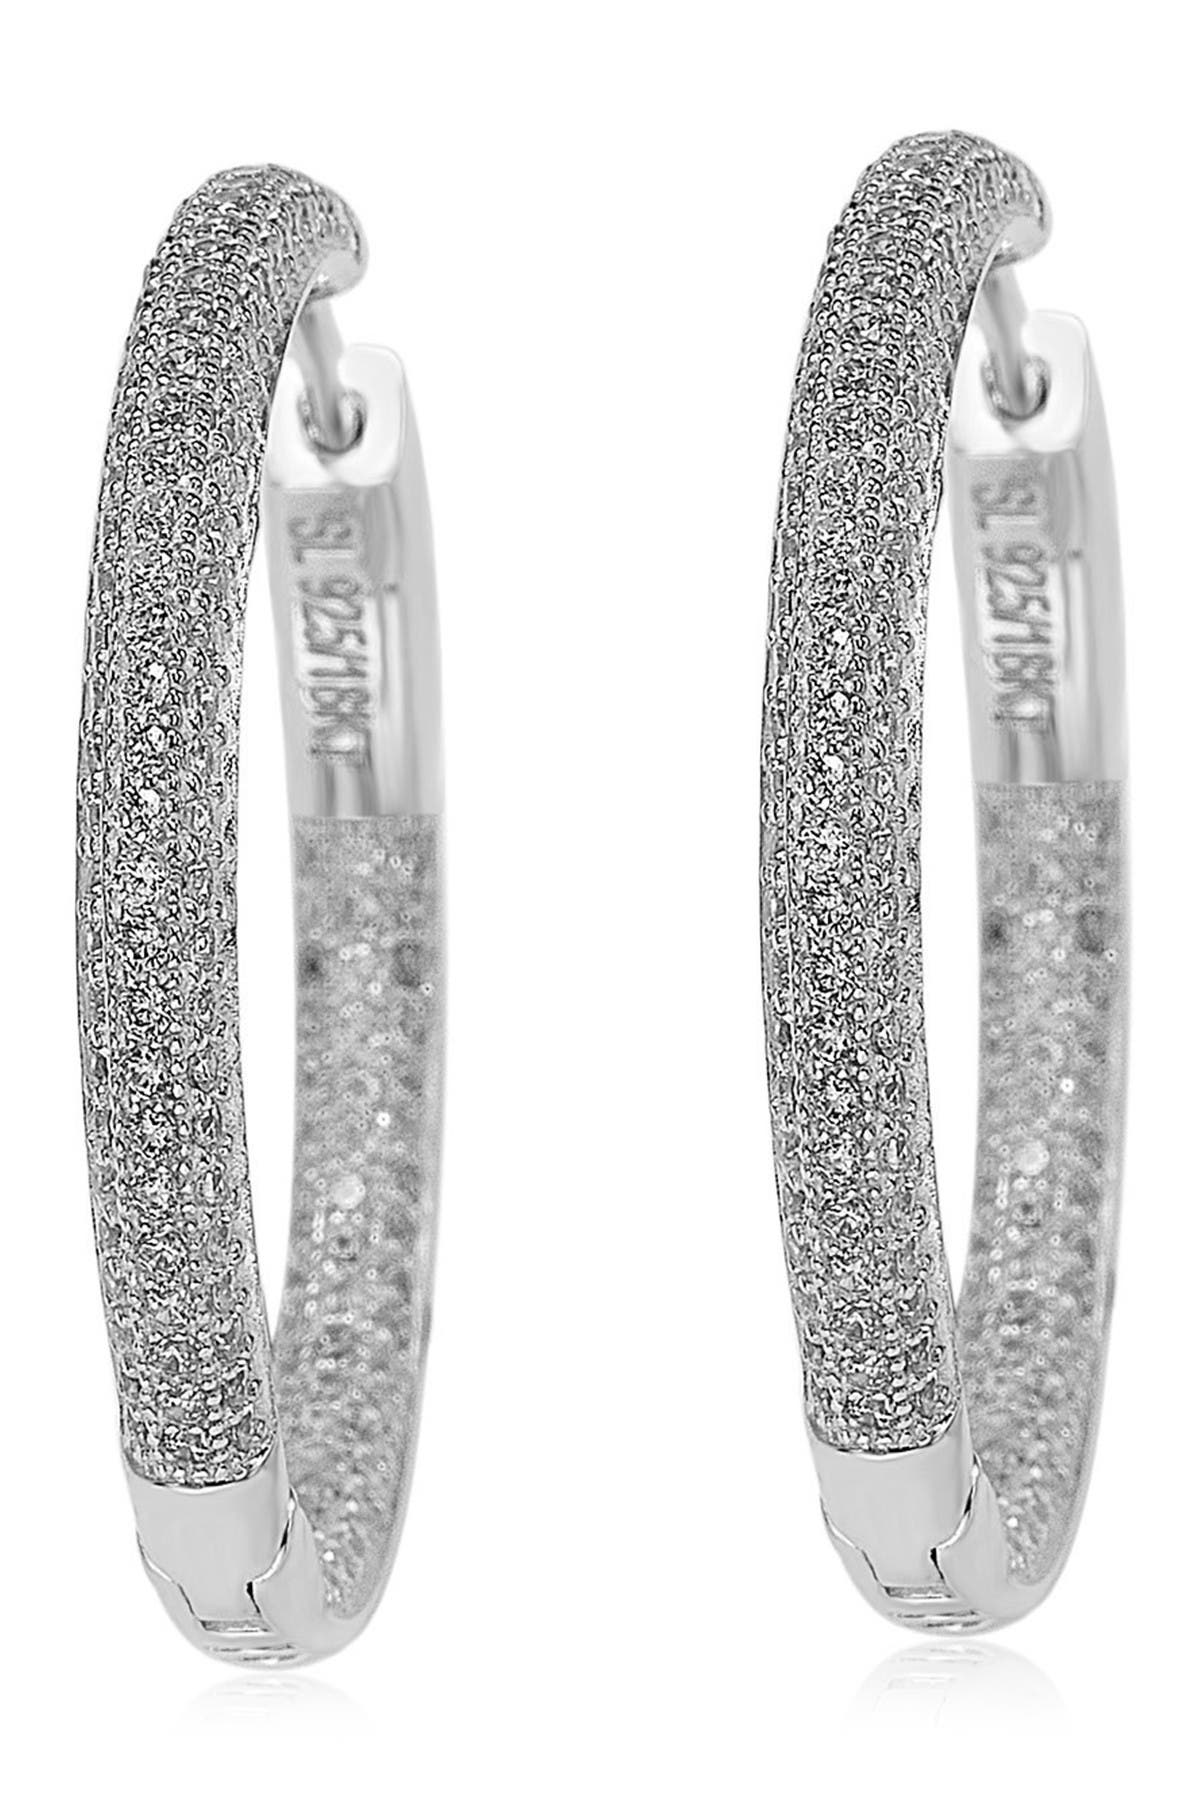 Image of Suzy Levian Sterling Silver Pave Set CZ Hoop Earrings